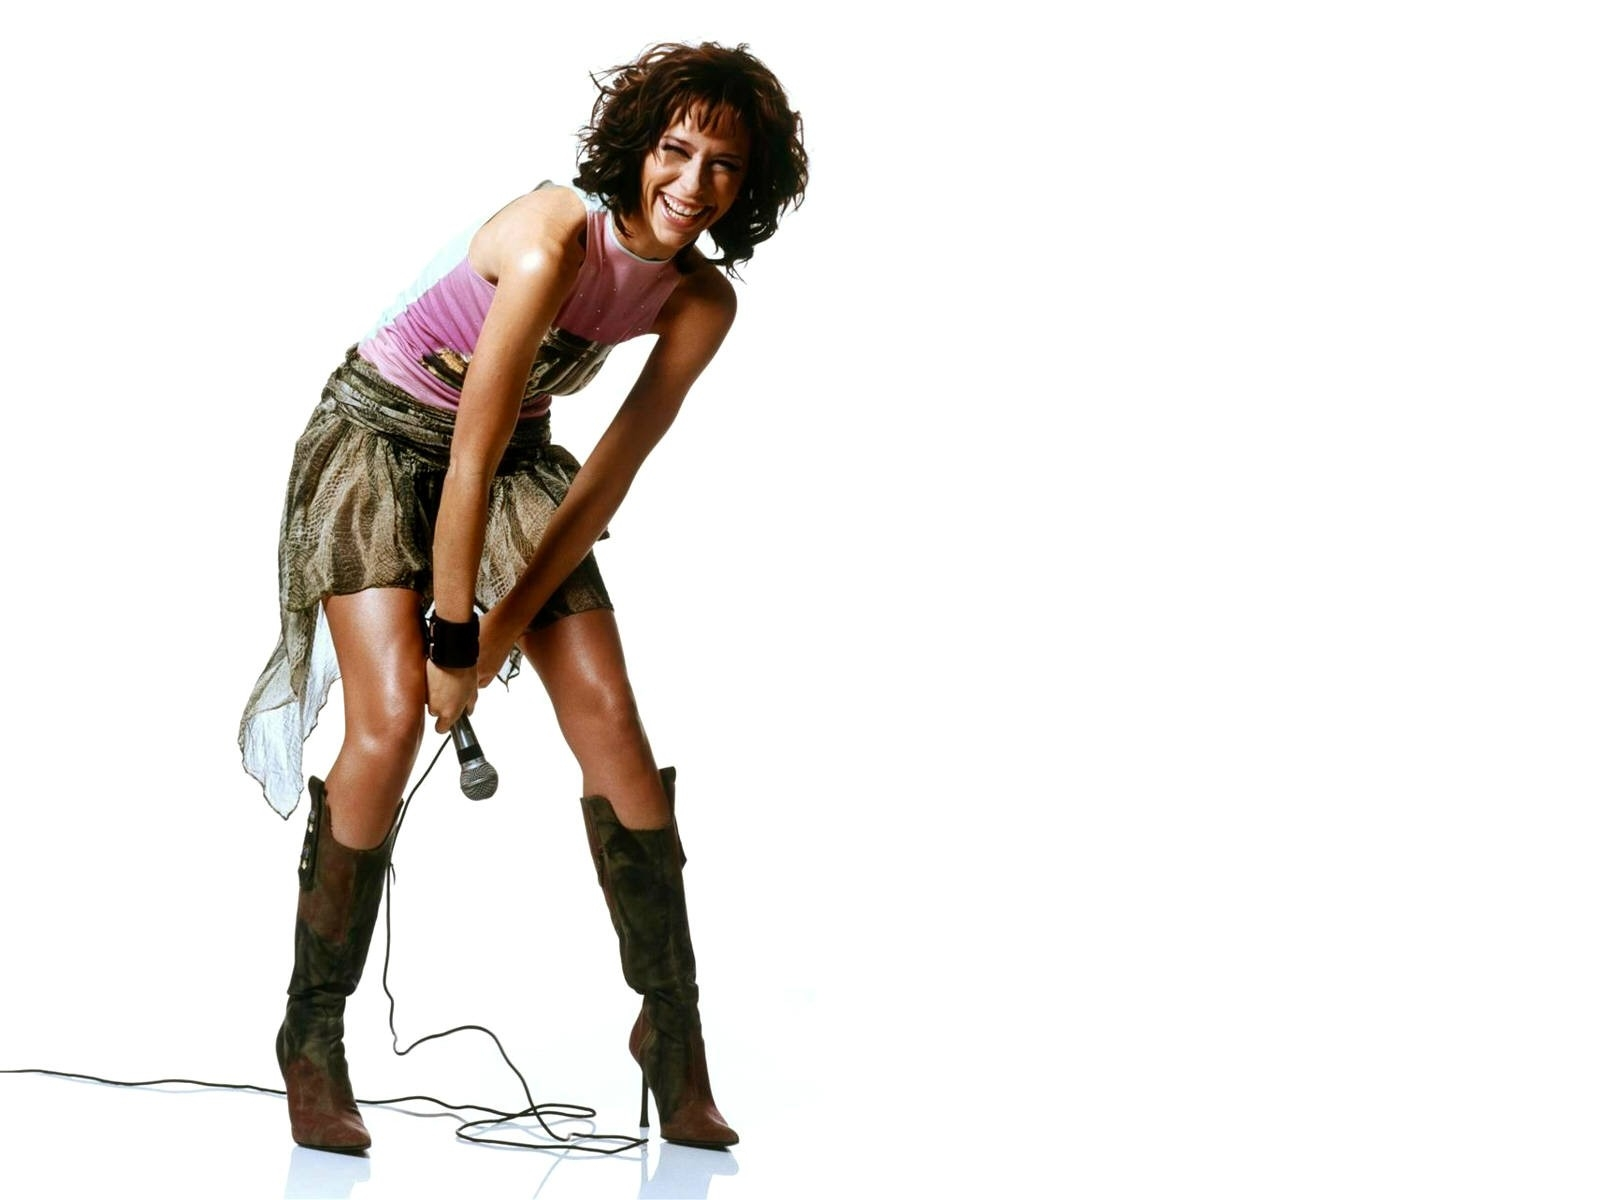 Wallpaper di una grintosa Jennifer Love Hewitt in versione rock